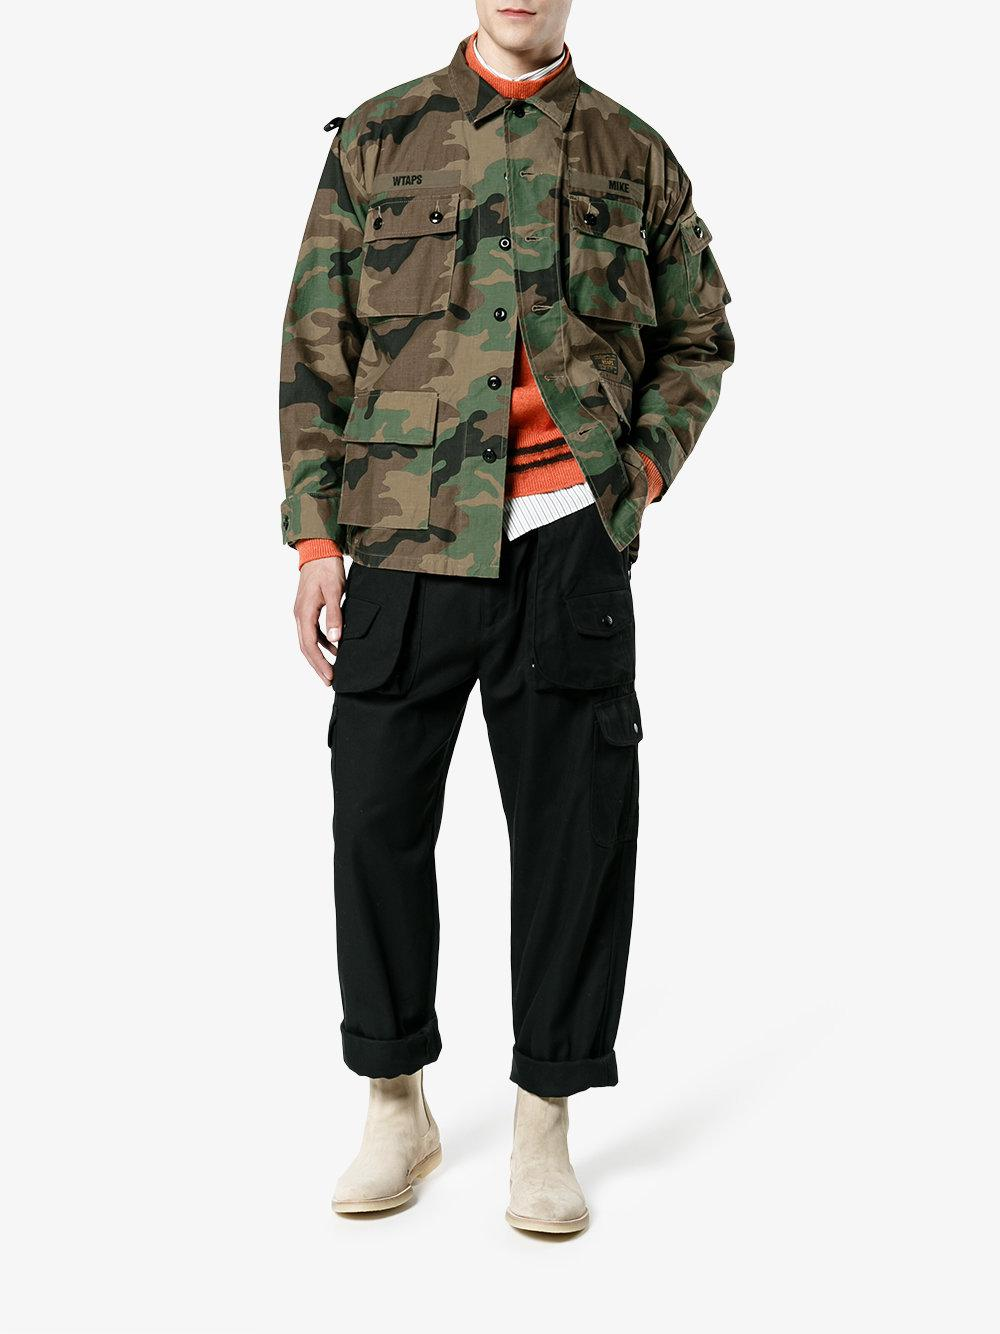 8fa84344720d8 WTAPS Camouflage Military Jacket in Brown for Men - Lyst